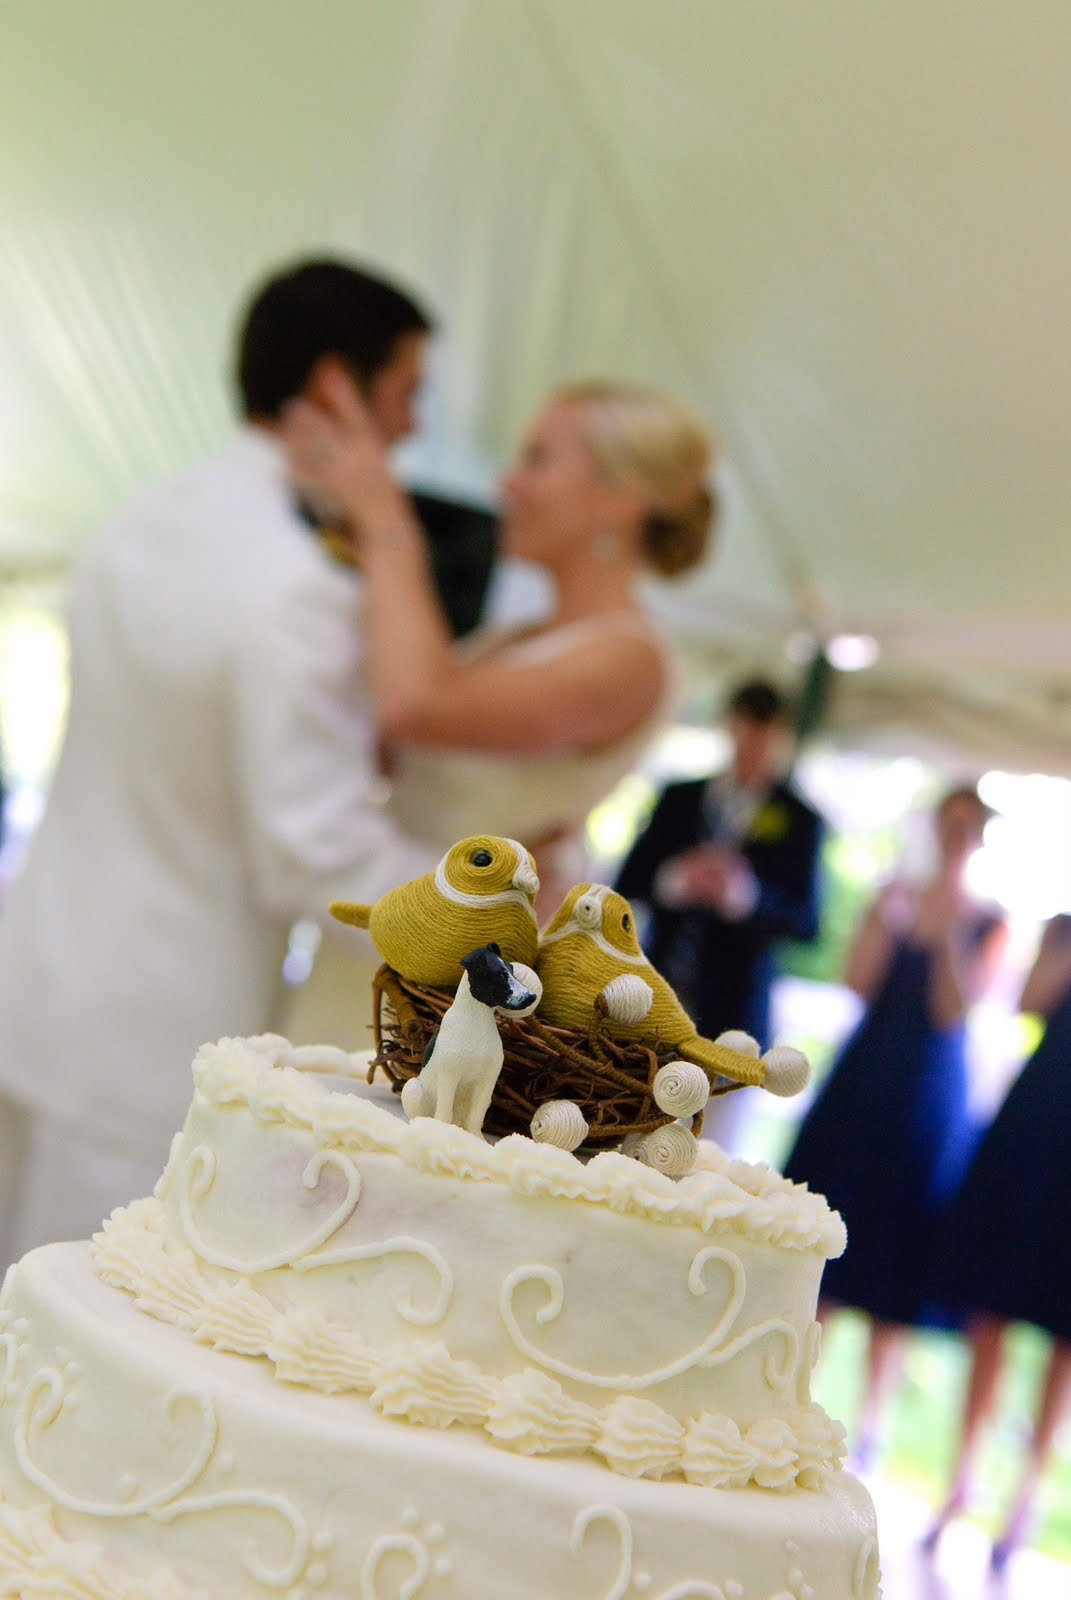 gluten-free wedding: what